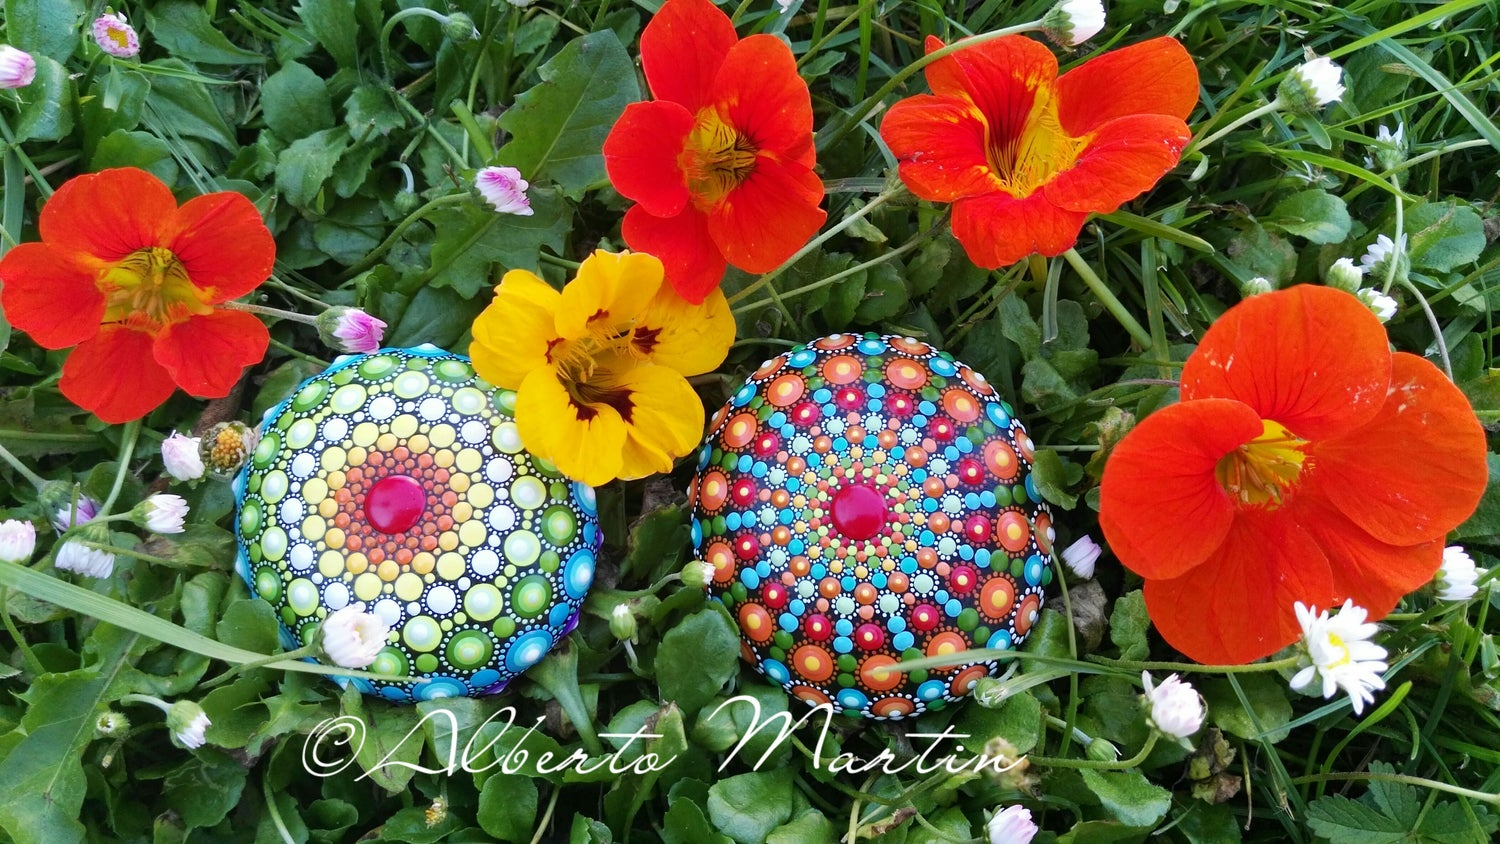 Image of Spring 4-5 2020. SET OF 2 New Mandala stones  by ALBERTO MARTIN